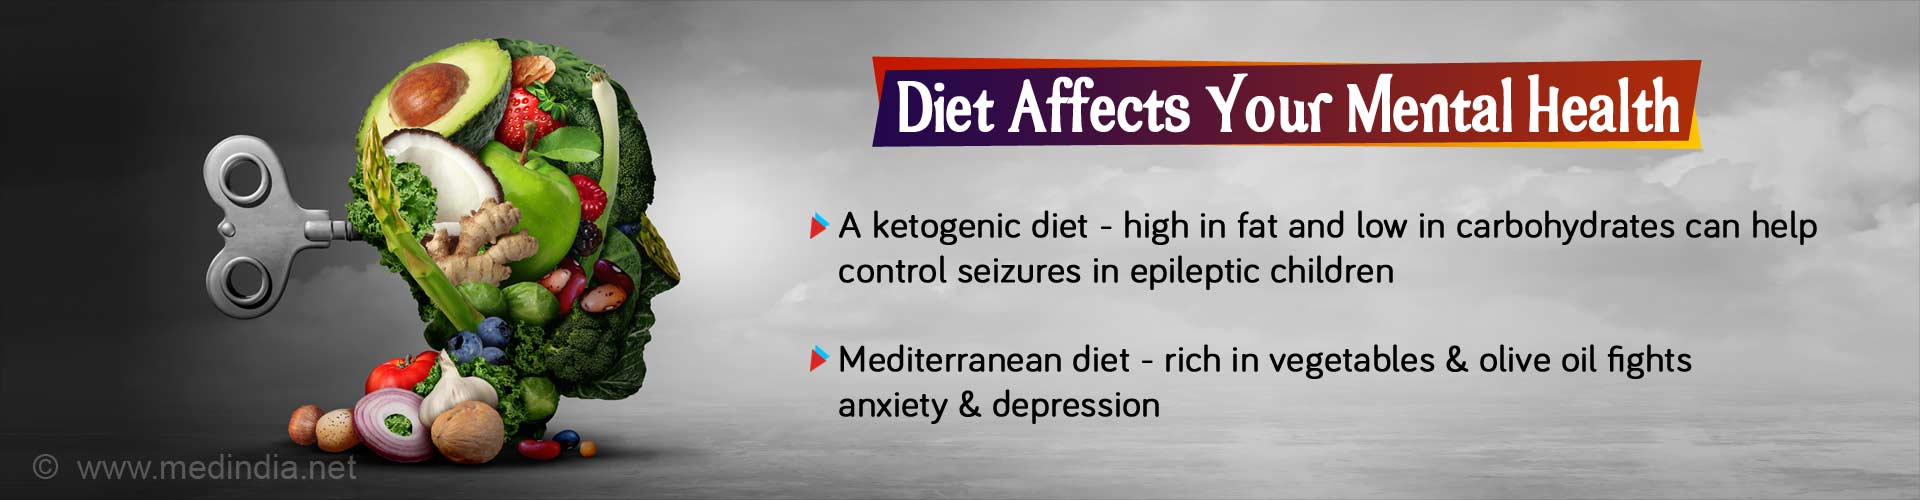 Diet Linked with Mental Health - New Evidence